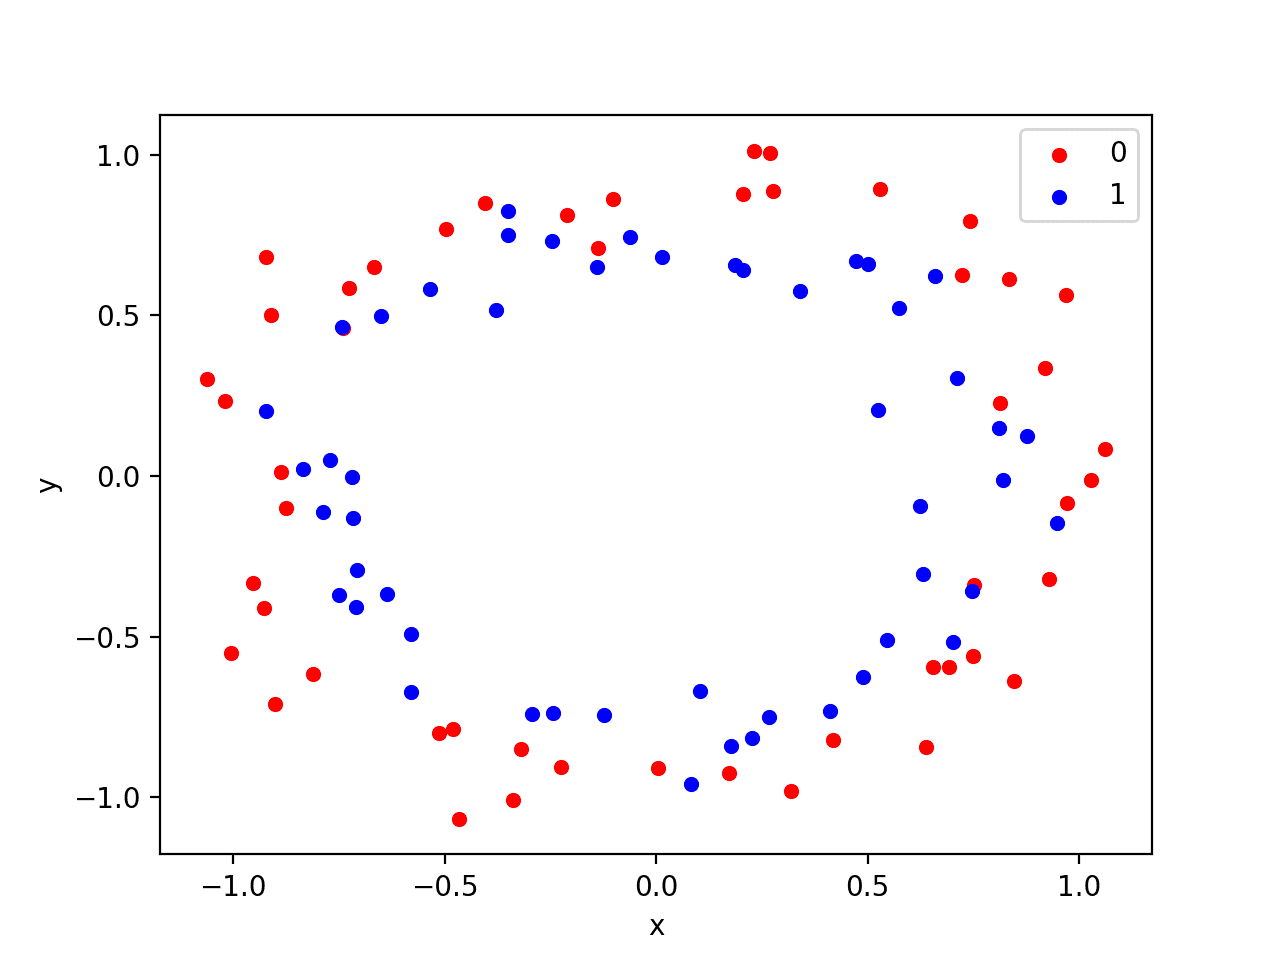 How to Reduce Overfitting With Dropout Regularization in Keras